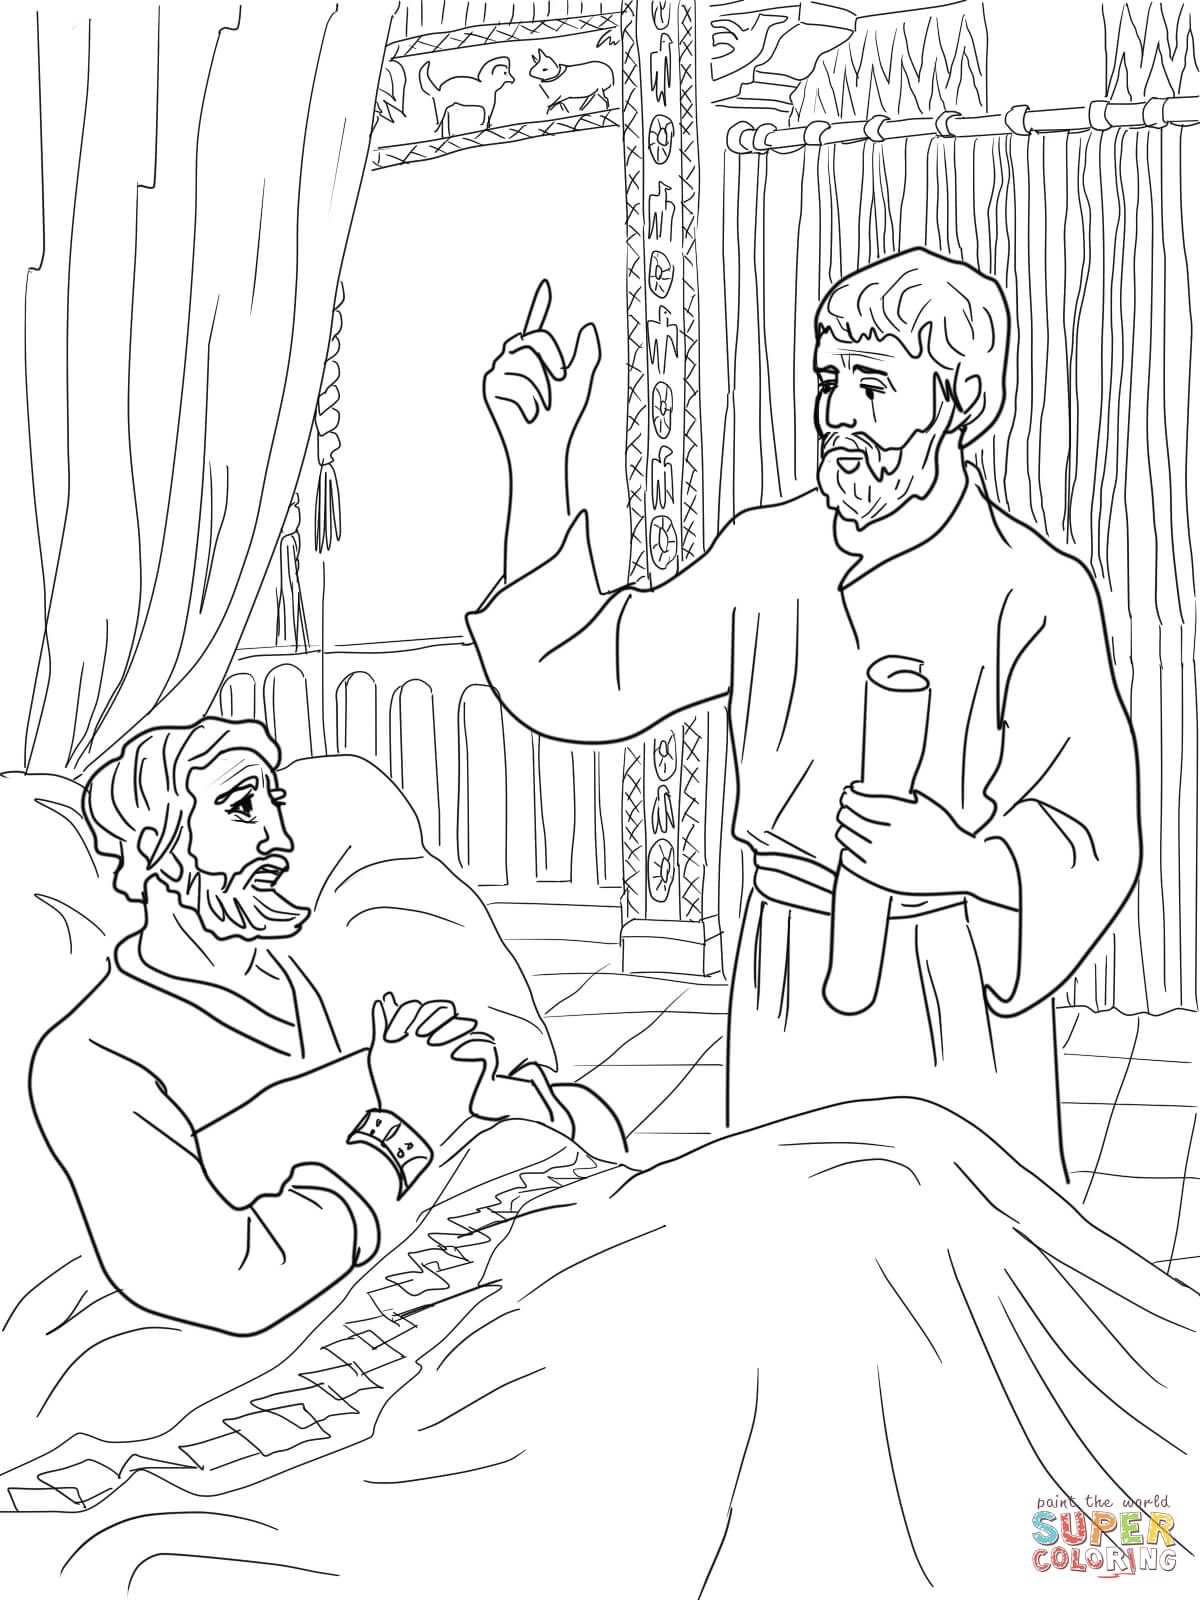 King Hezekiah And Isaiah Coloring Page Free Printable Coloring Pages Bible Coloring Pages Bible Coloring King Hezekiah